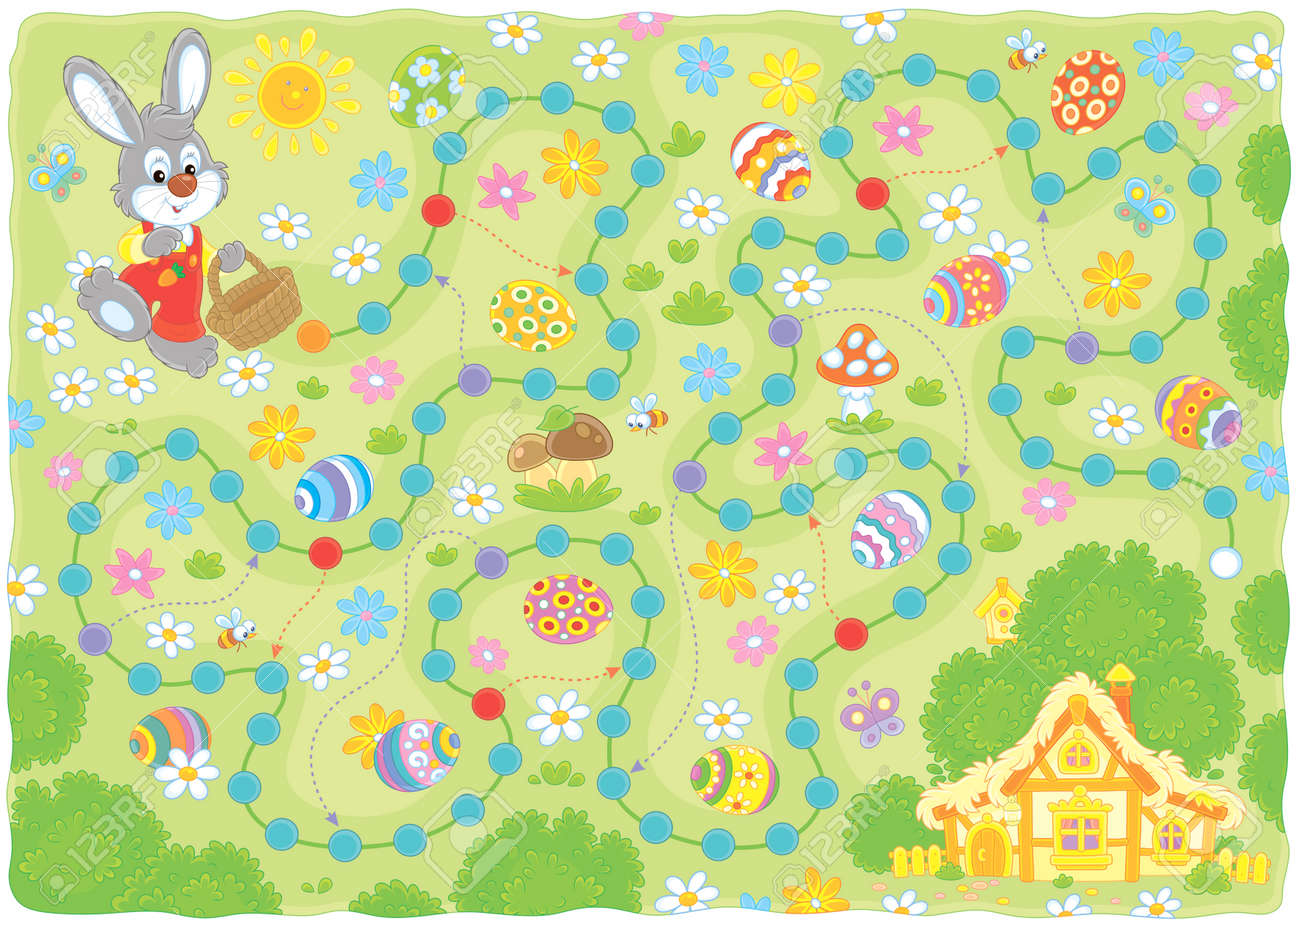 photograph about Board Game Printable named Easter egg hunt printable board recreation. Small Bunny with a little..